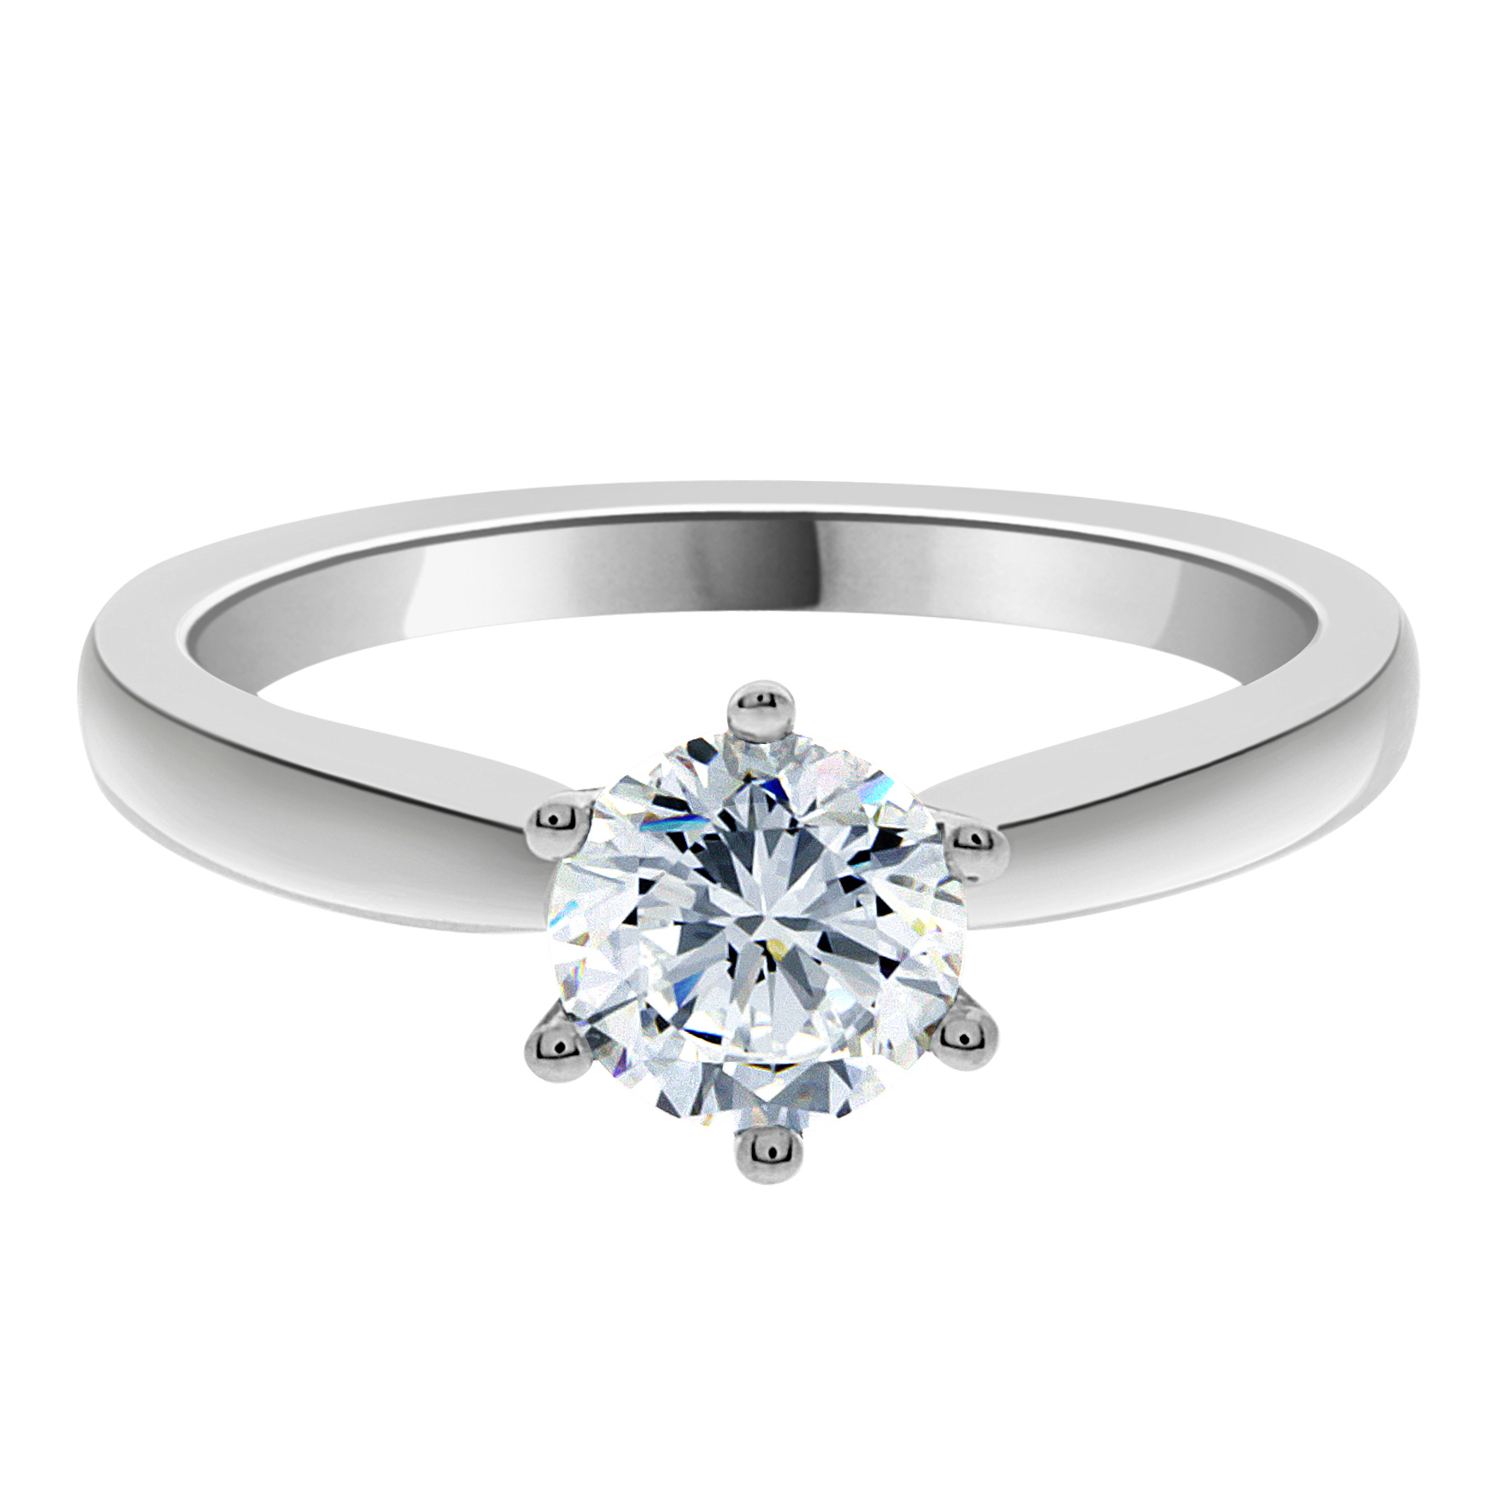 prong vs used post all related elegant ring better pave world engagement in about settings for jewellery beautiful setting is learn diamond the which jewelry of